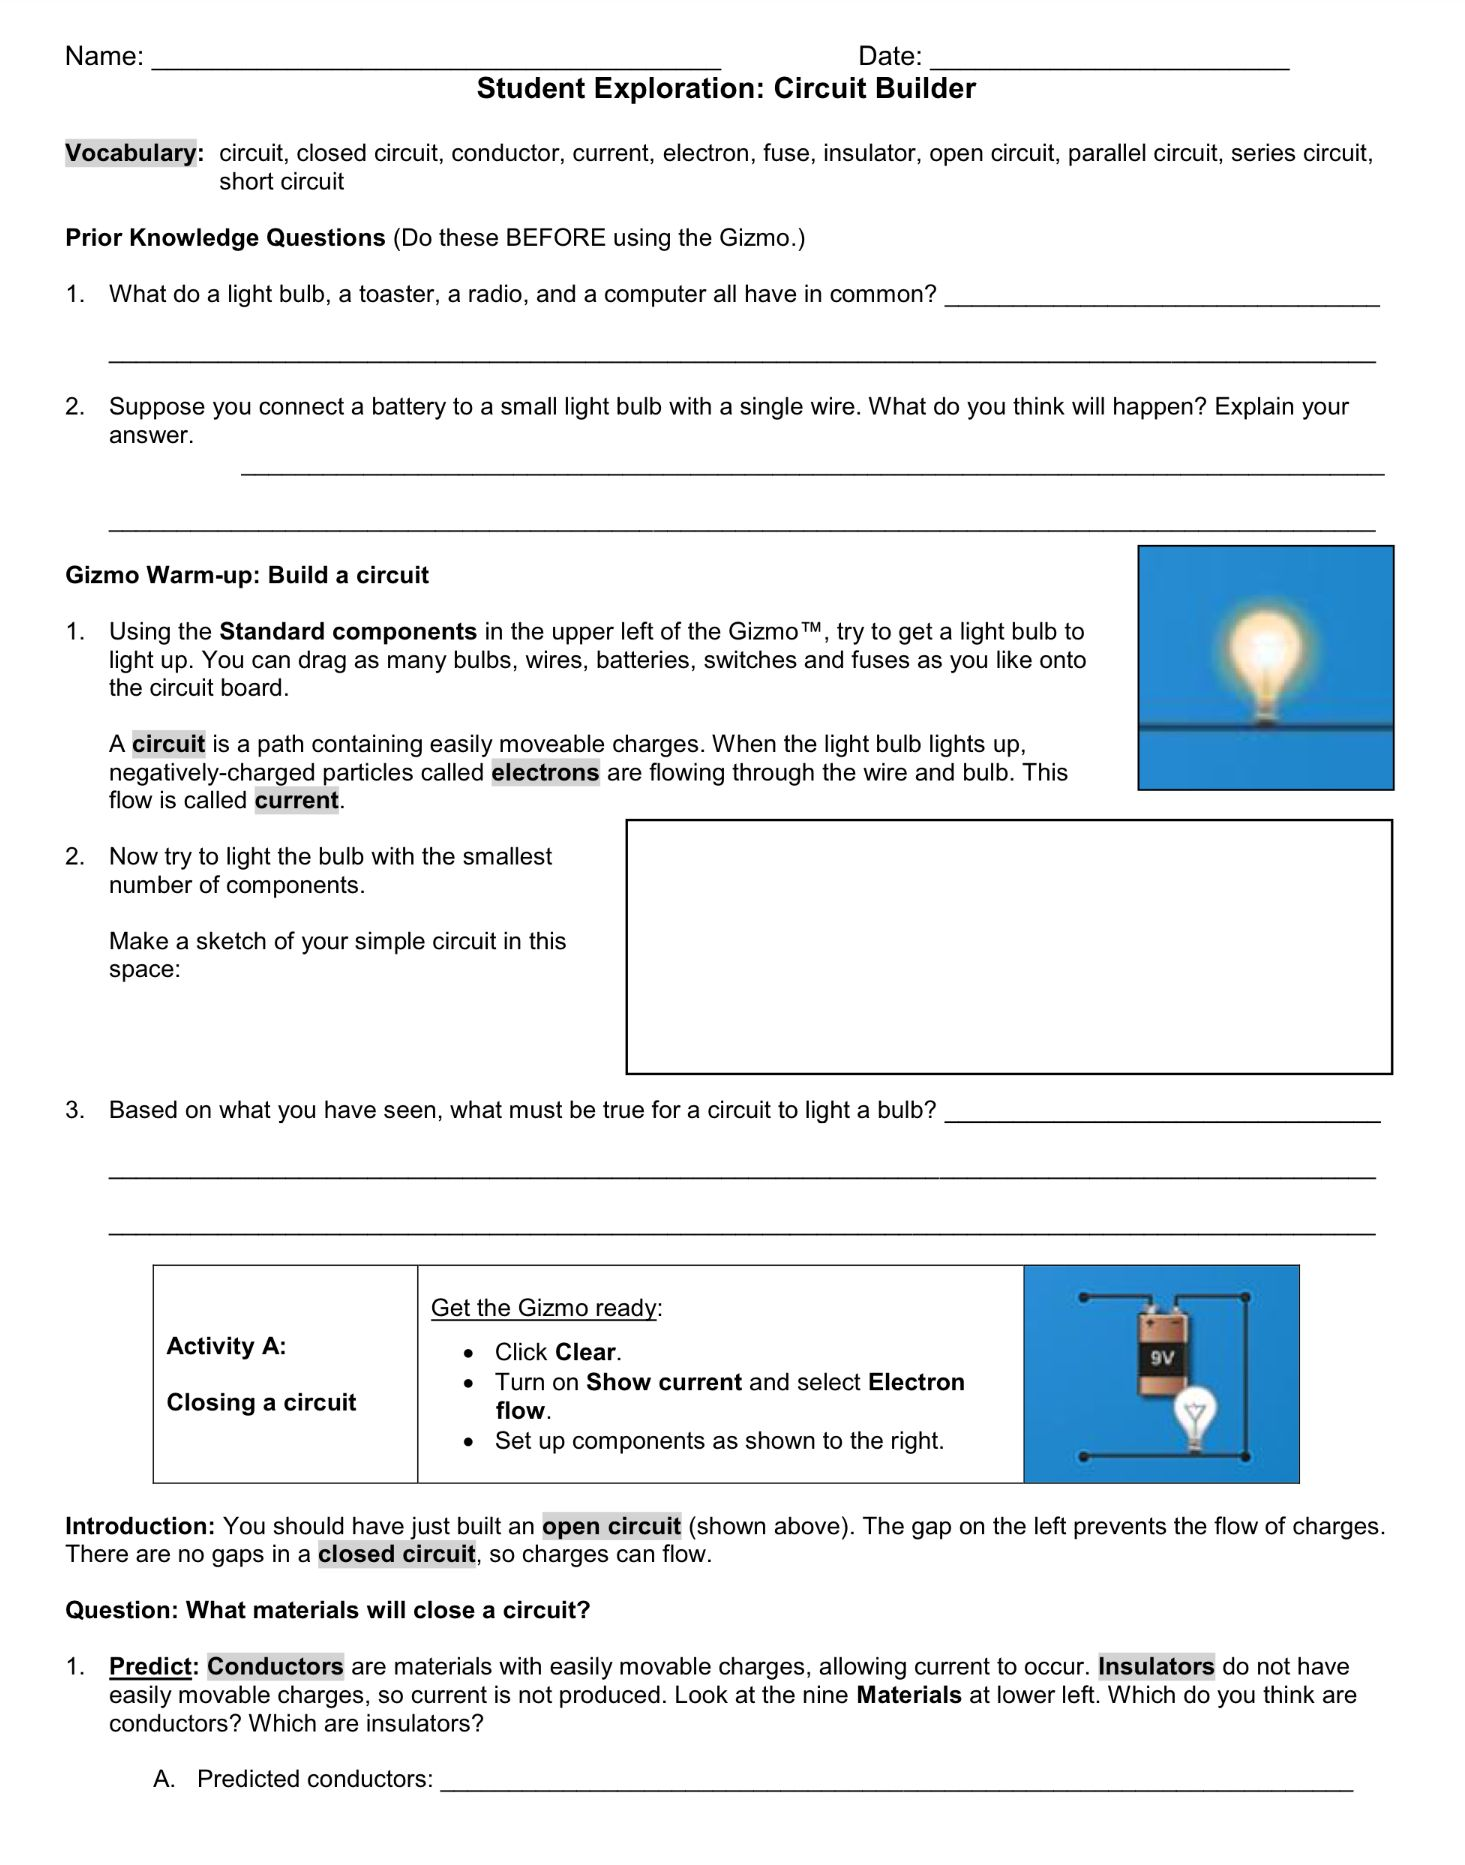 Circuit Builder Student Exploration Worksheet Wednesday Parallel And Series With Lightbulbs Battery February 21 2018